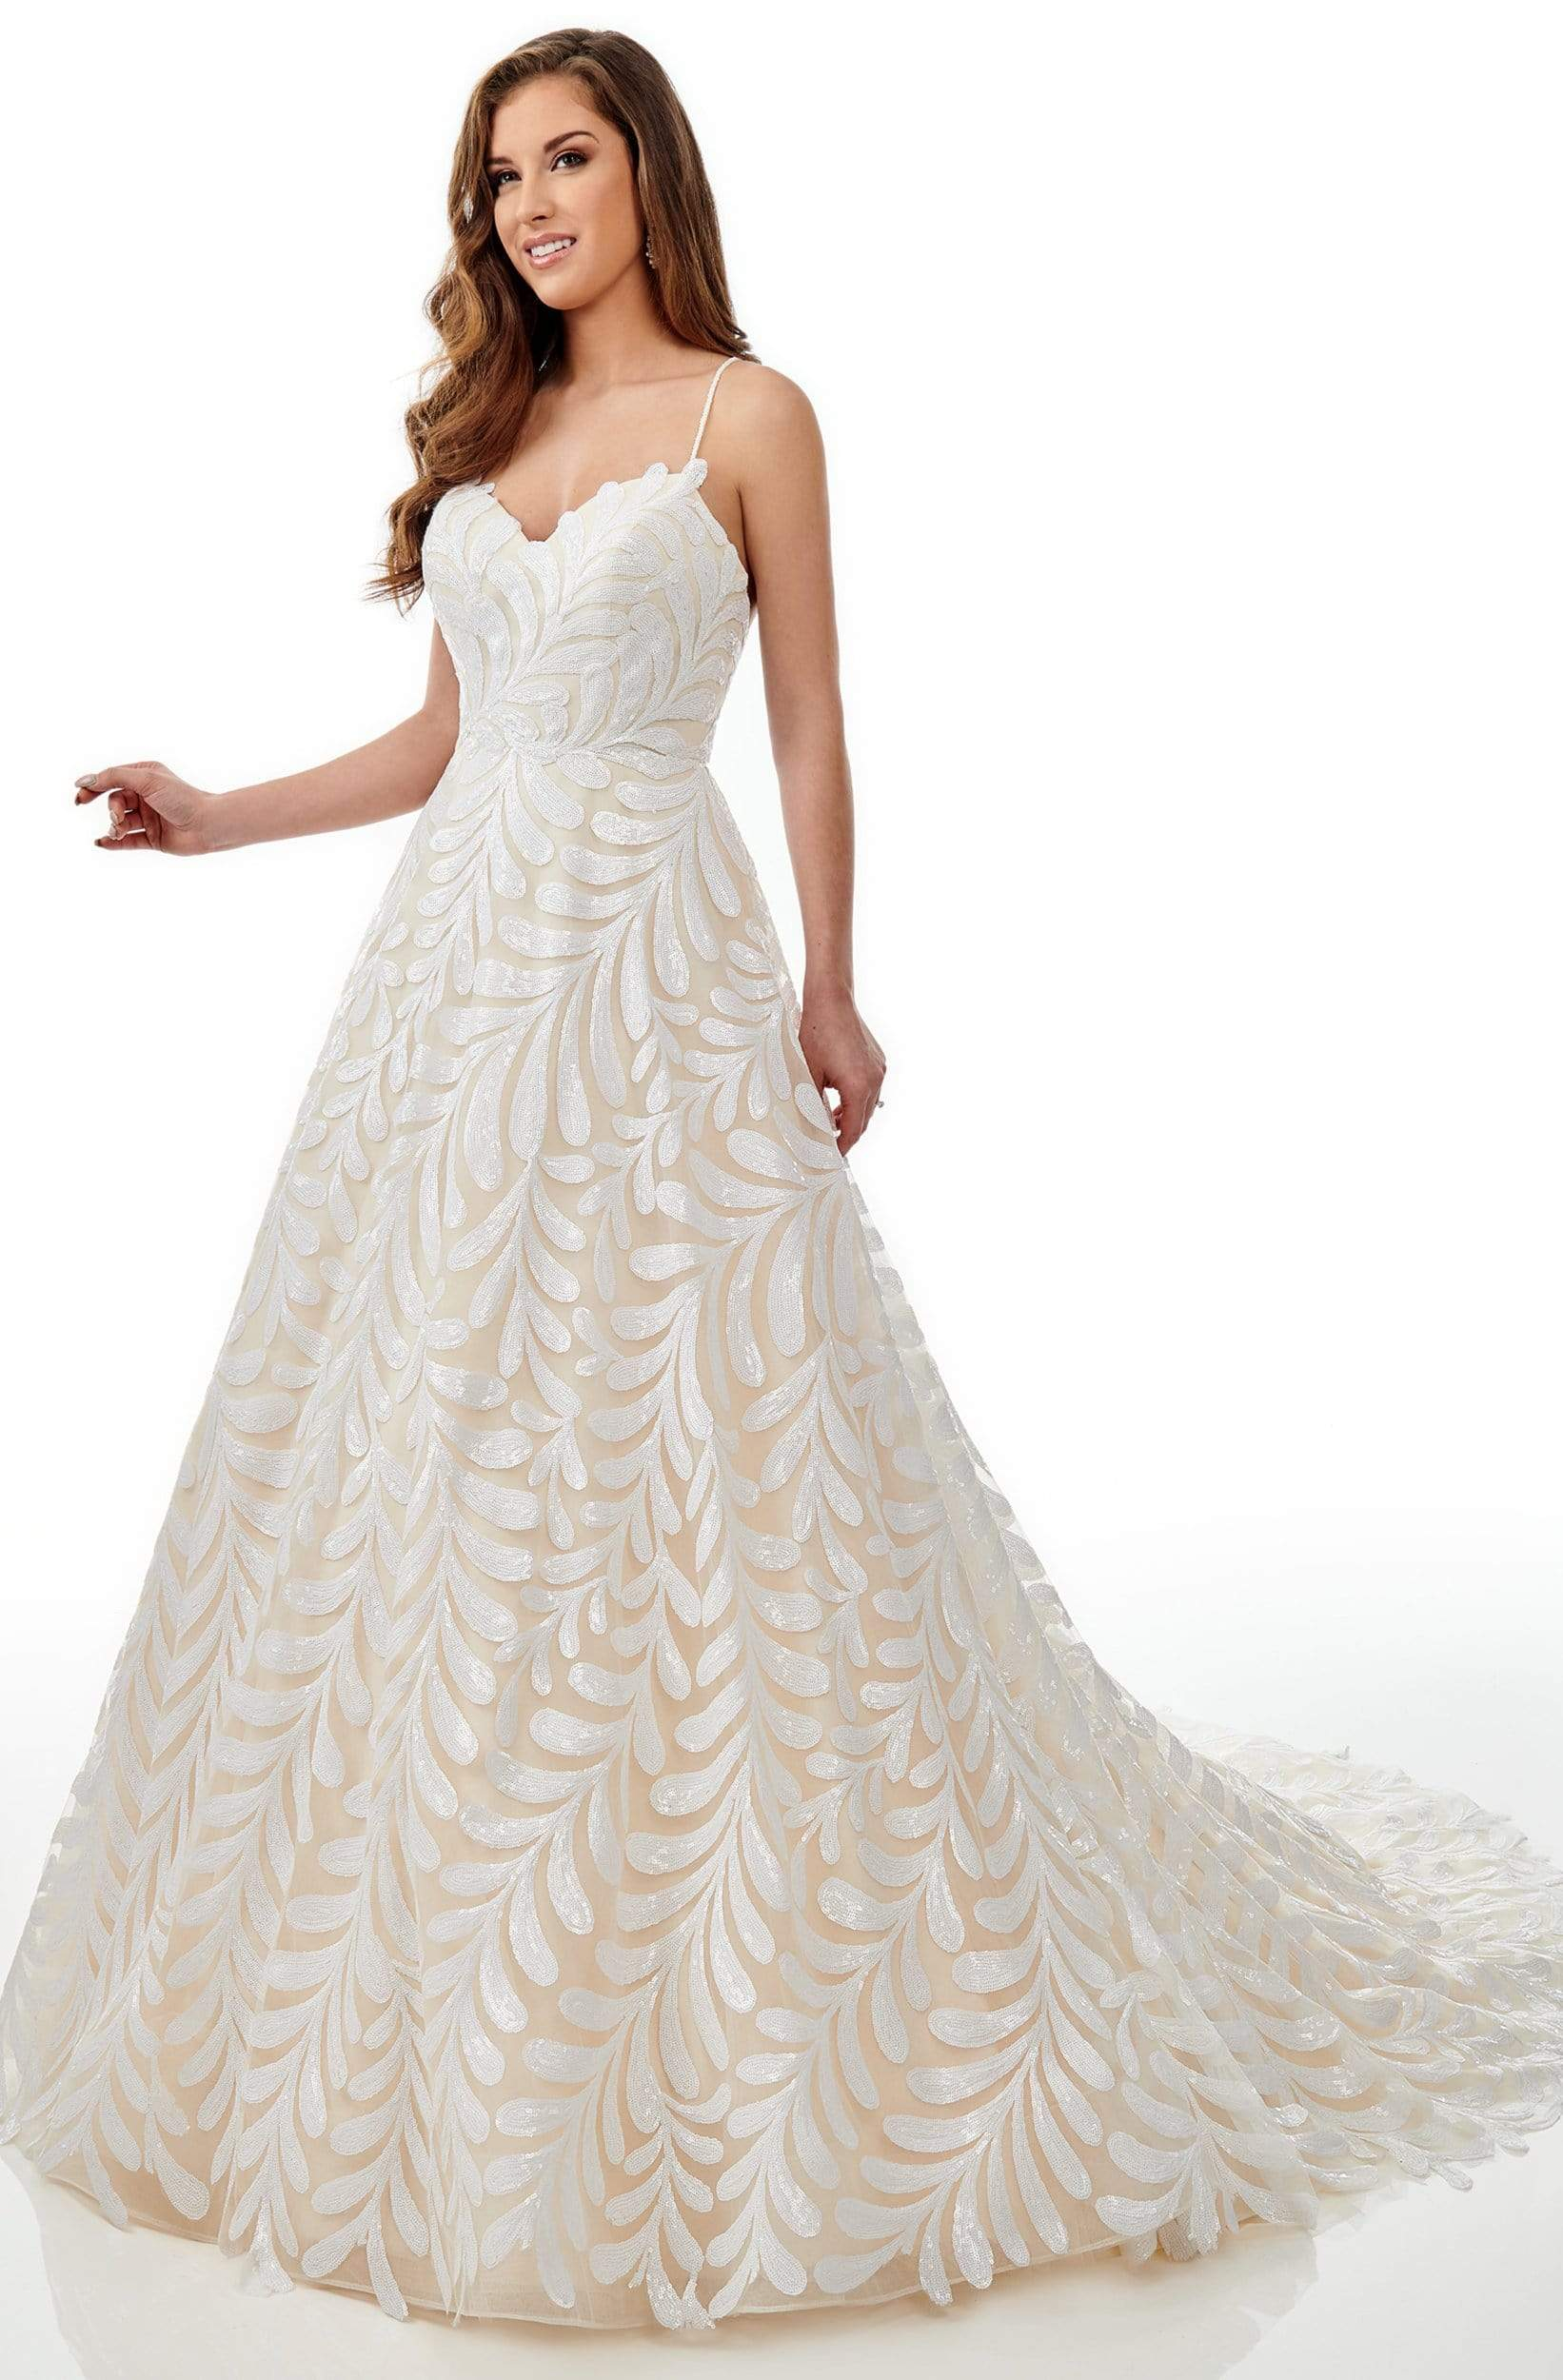 Lo'Adoro Bridal By Rachel Allan - M766 Sequined Sweetheart Aline Gown from Rachel Allan